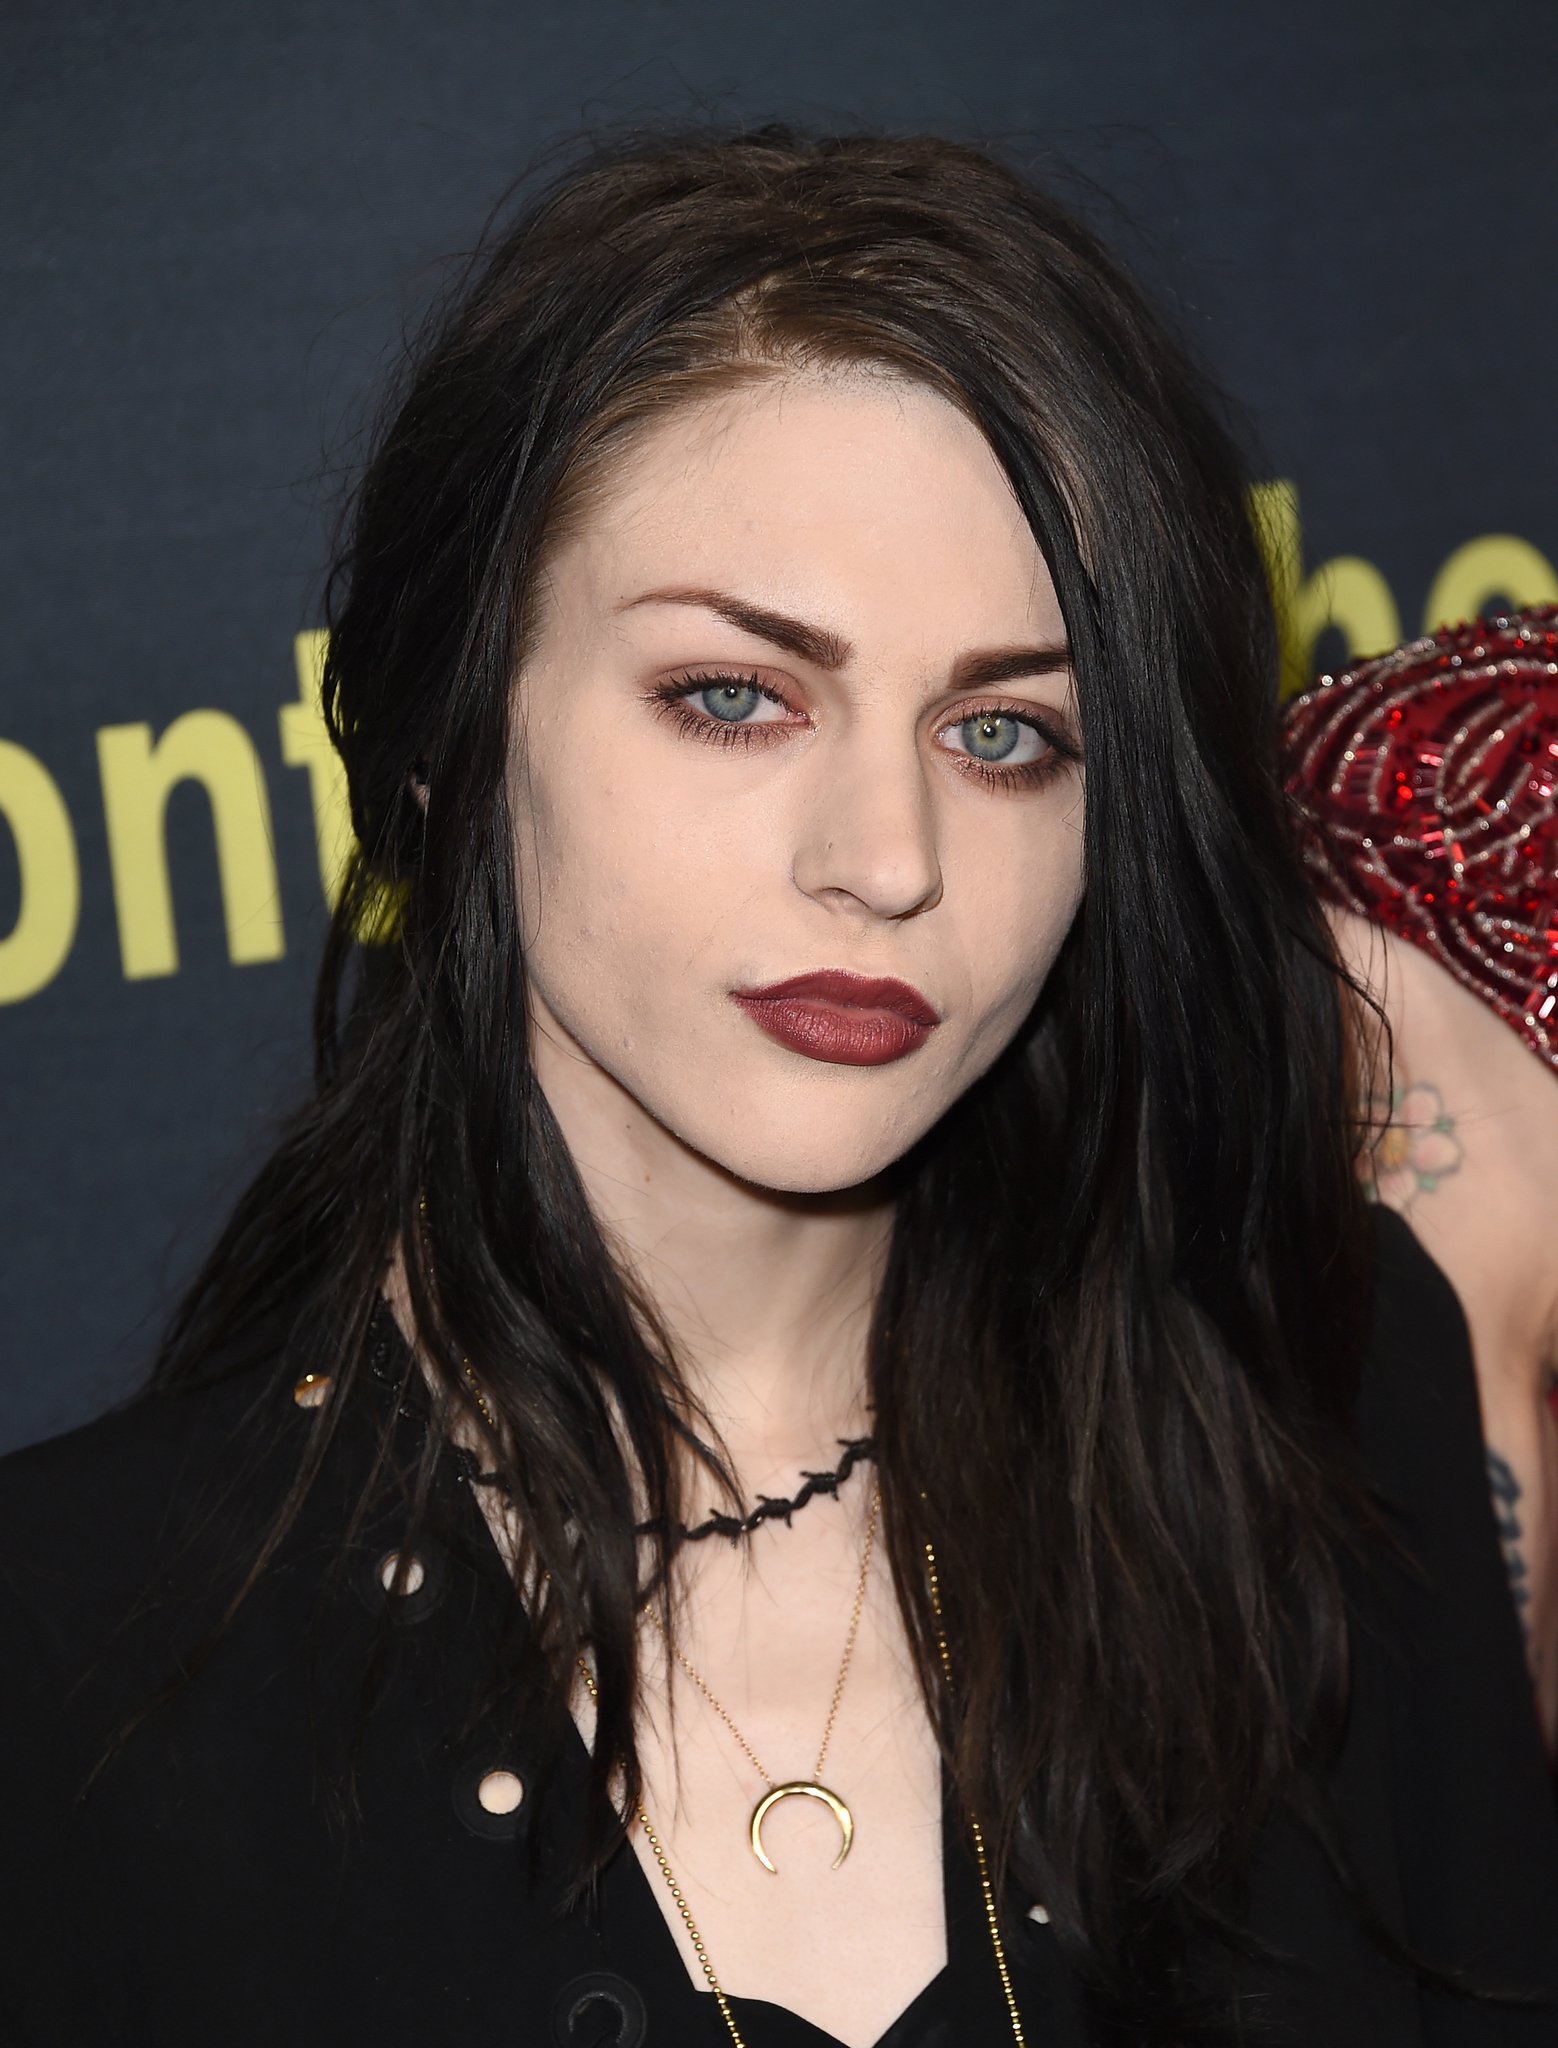 Photos Frances Bean Cobain nude photos 2019